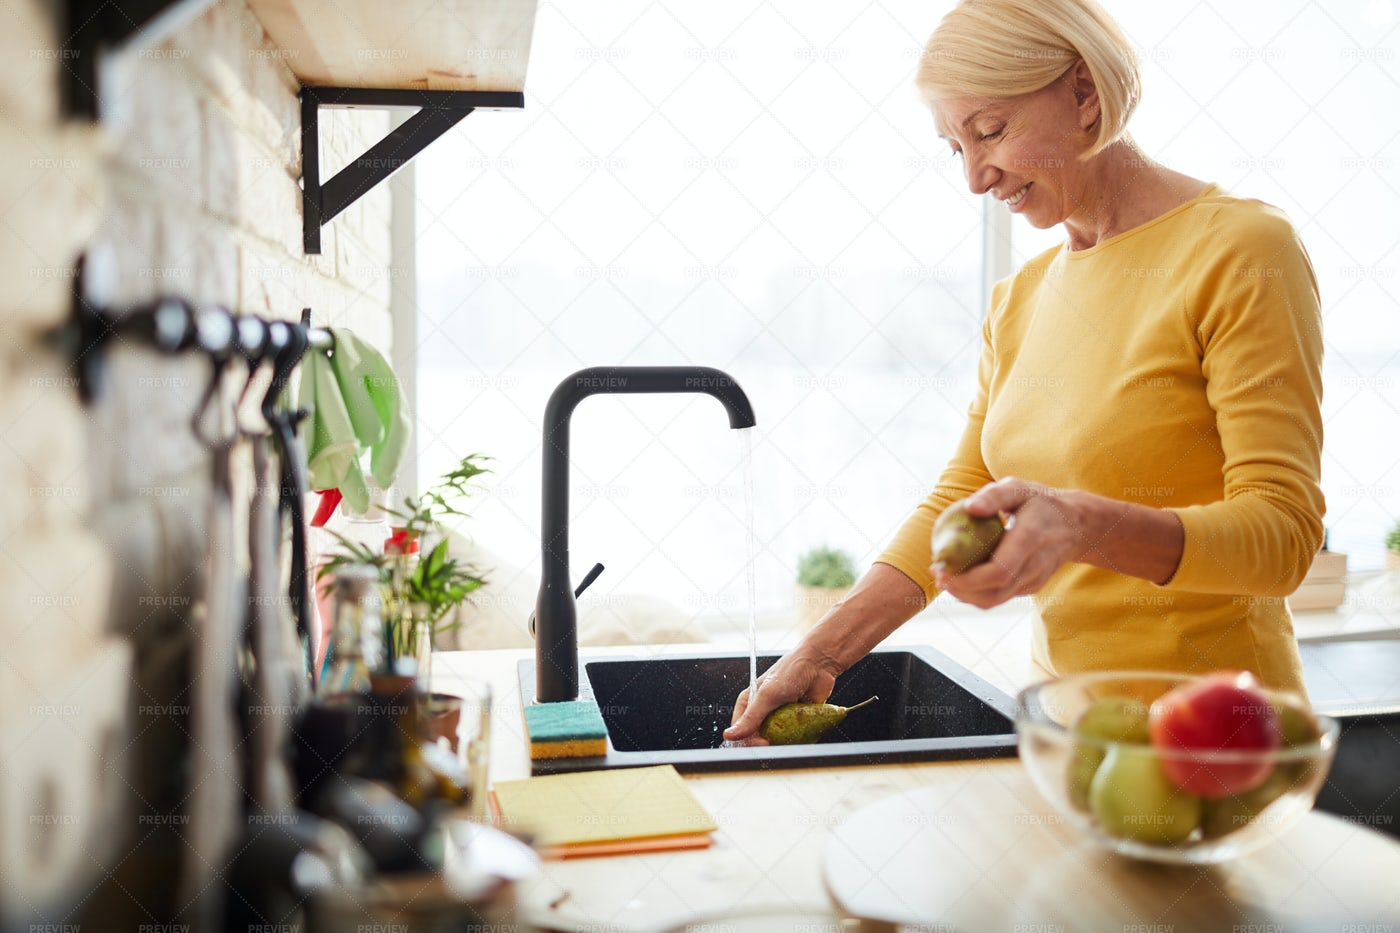 Happy Woman Cleaning Fruits: Stock Photos